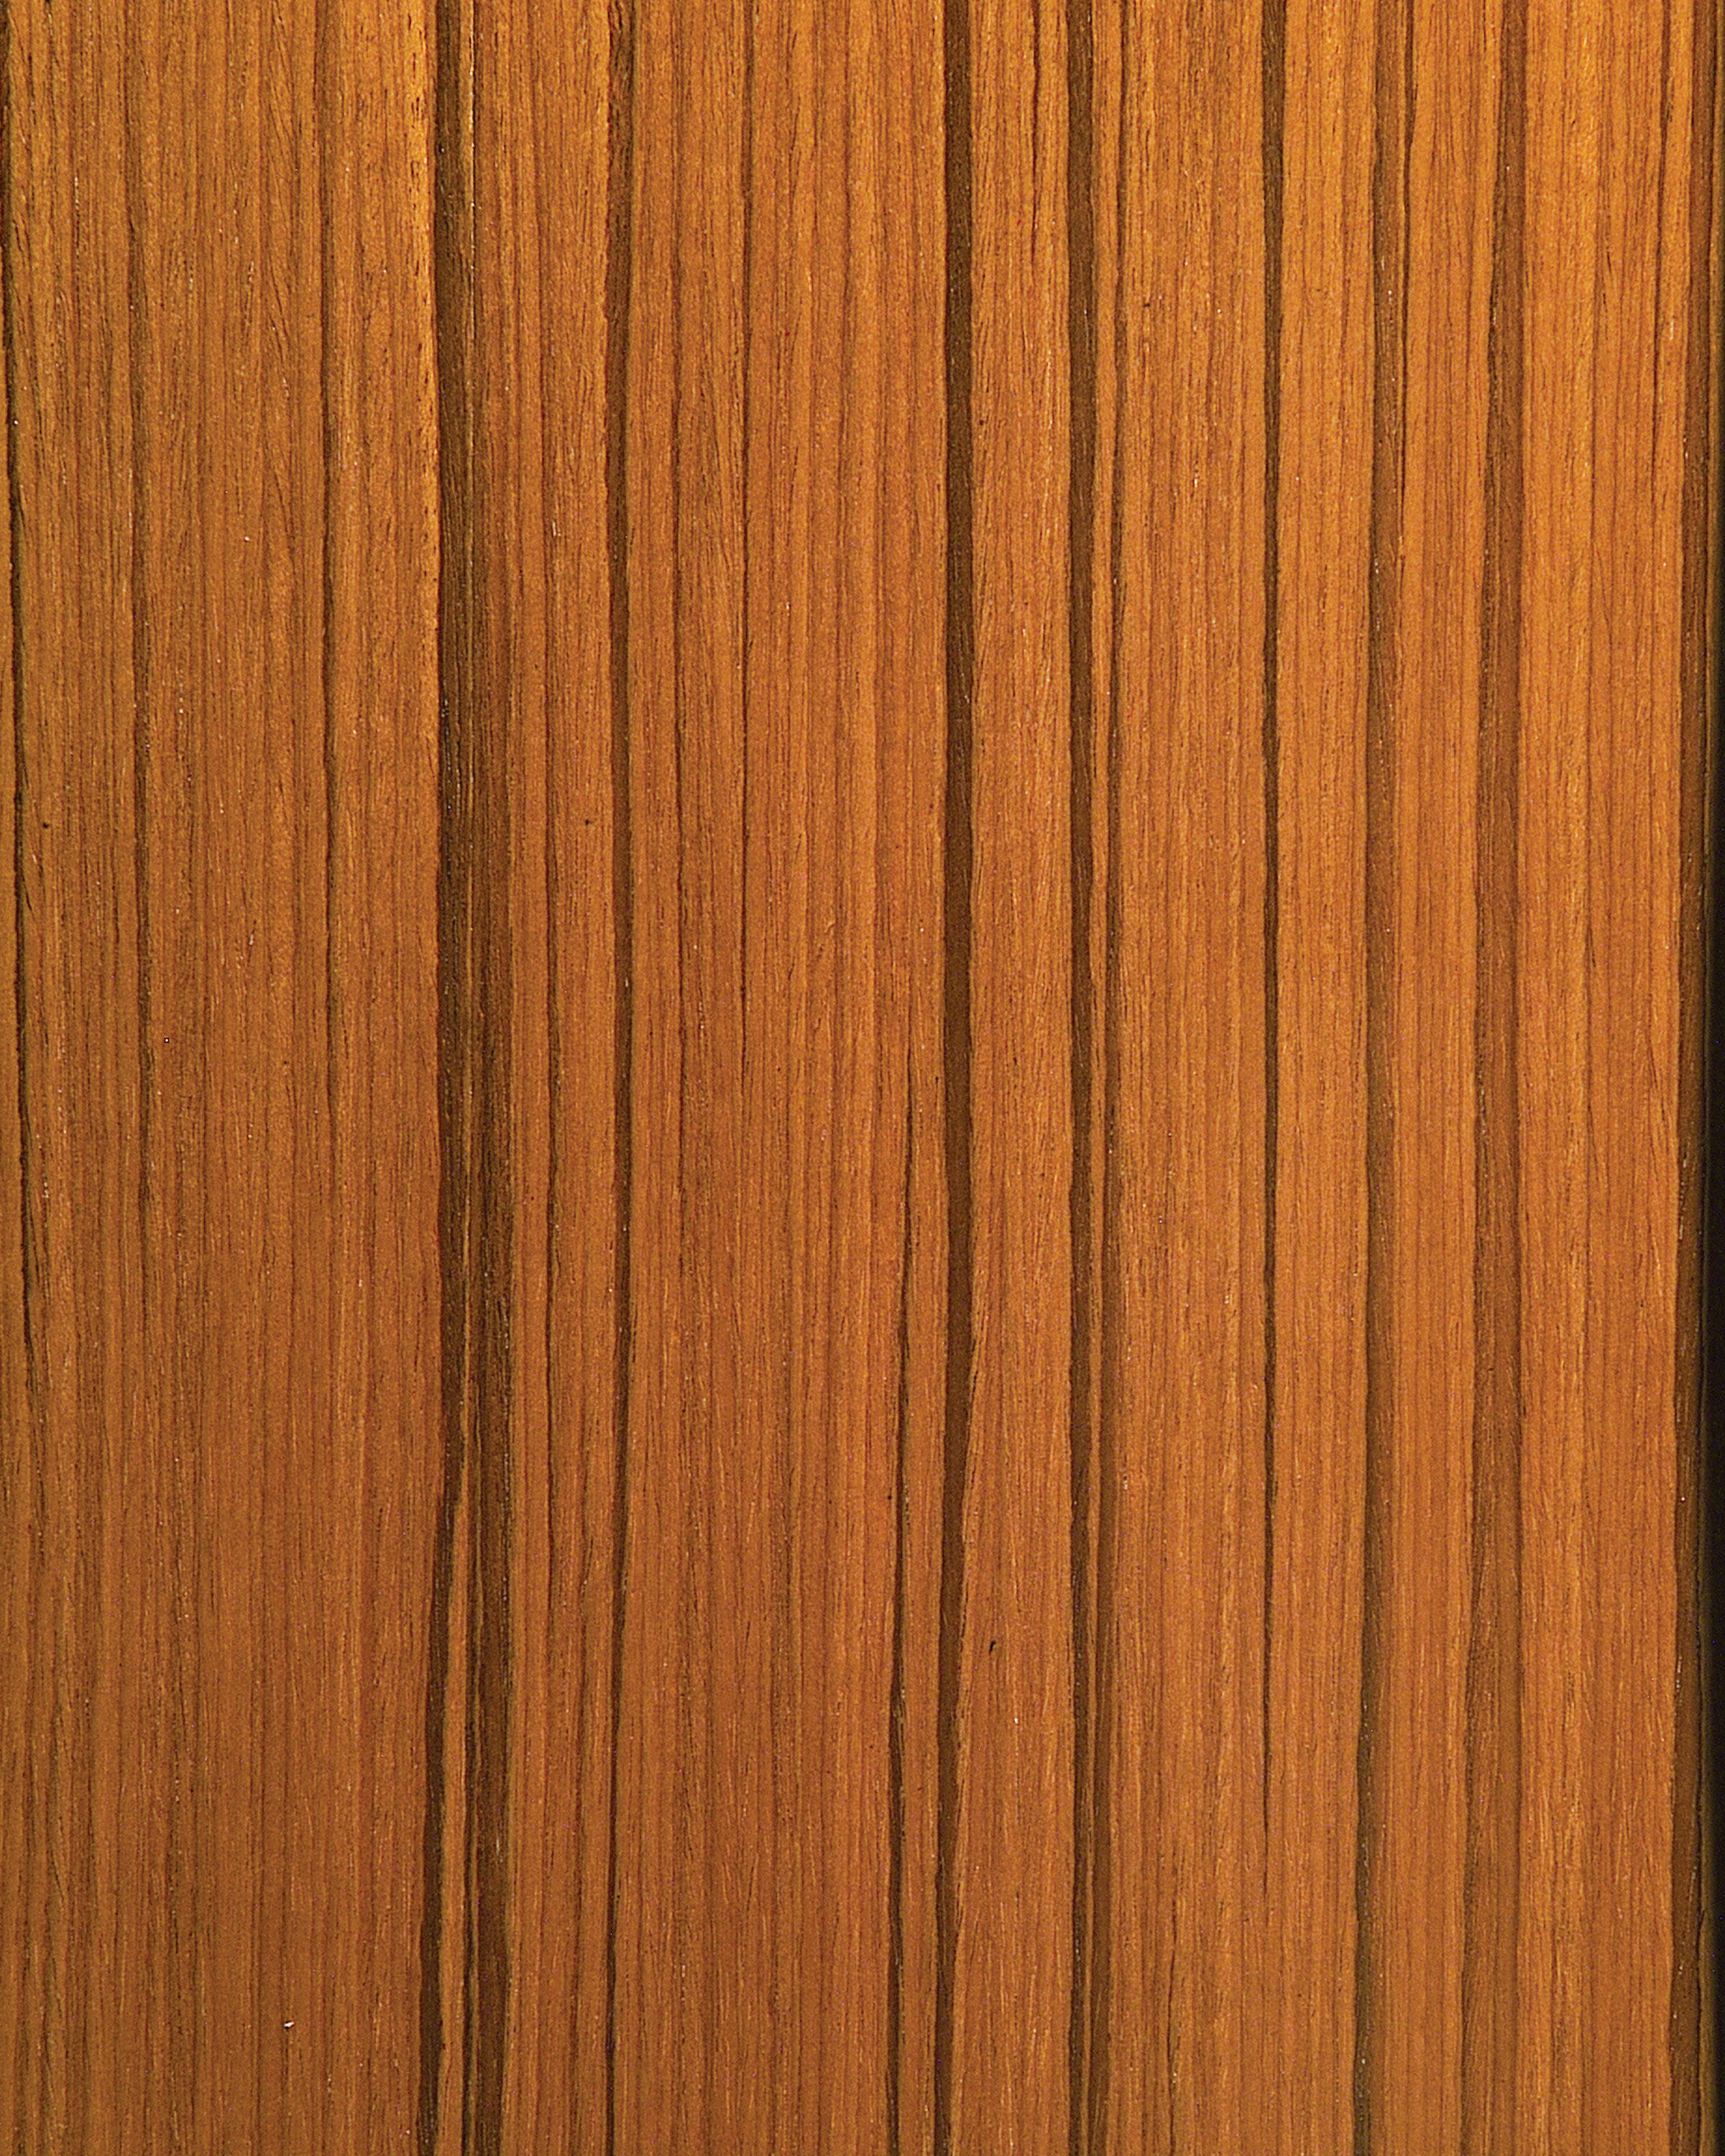 60804 Teak Straight Grain Wood Veneers From Treefrog